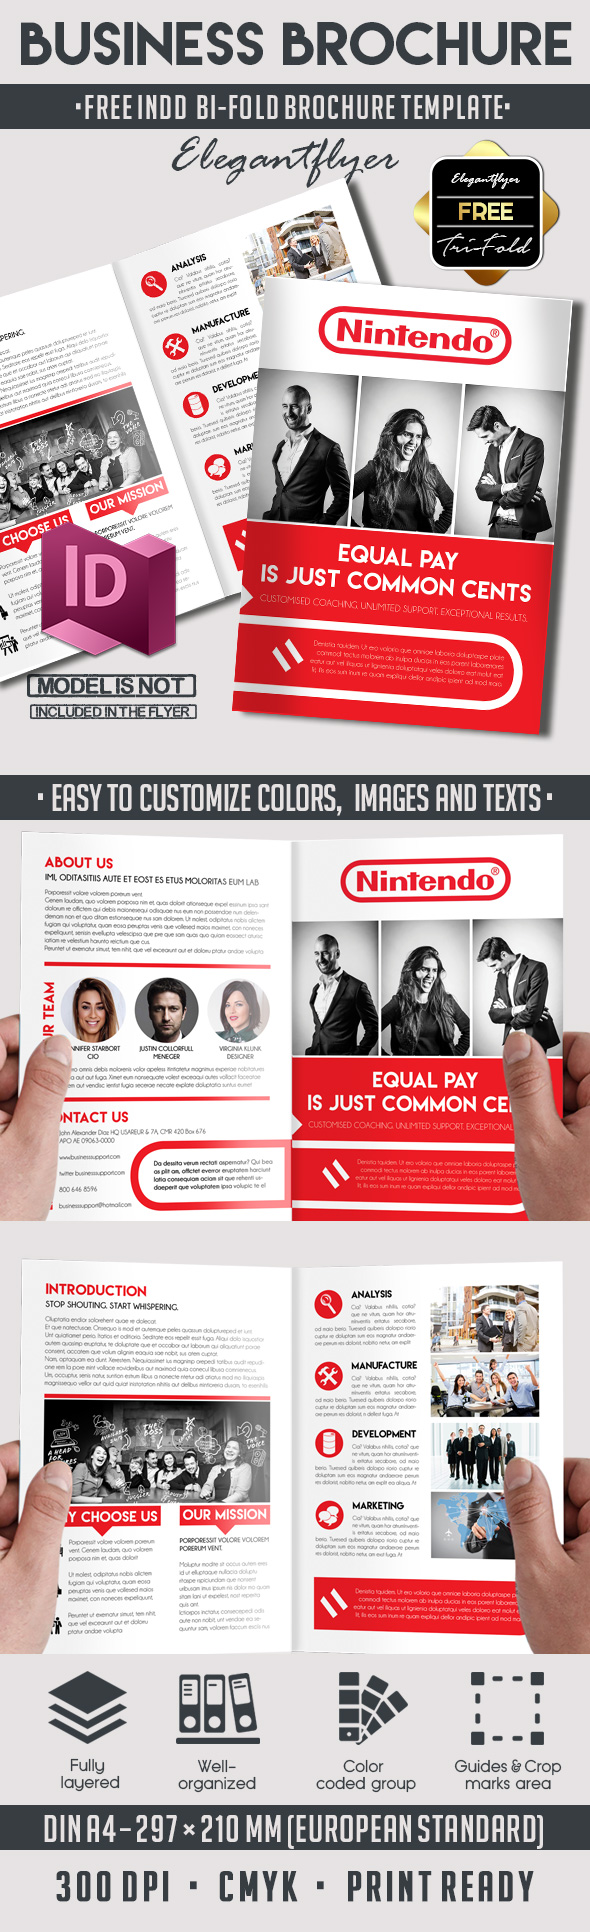 5 powerful free adobe indesign brochures templates - Bi Fold Brochure Template Indesign Free